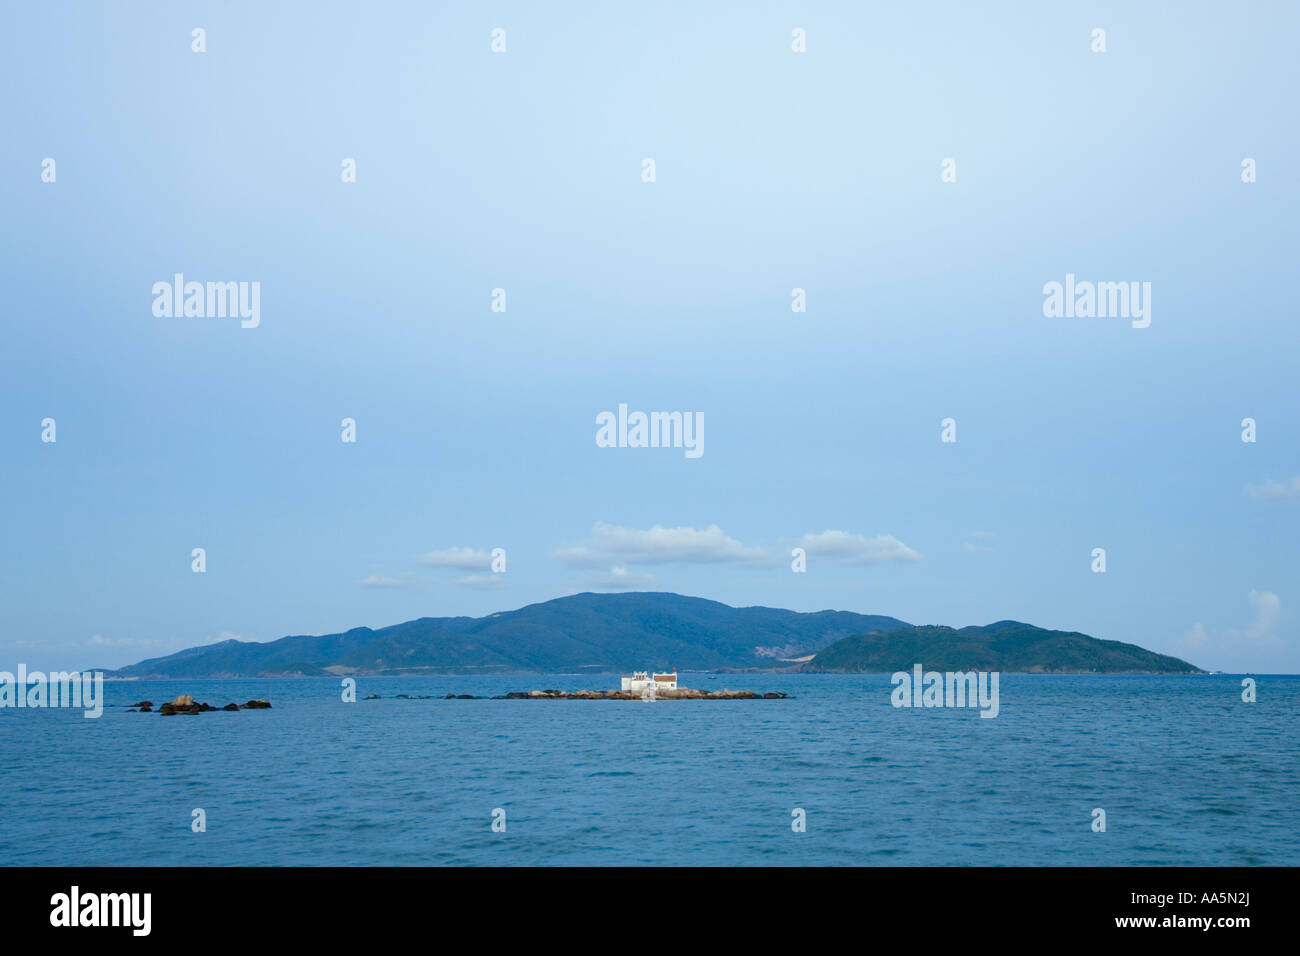 VIETNAM NHA TRANG CITY Buddhist temple on the tiny island of Hon Du also known as Red Island in the South China Stock Photo